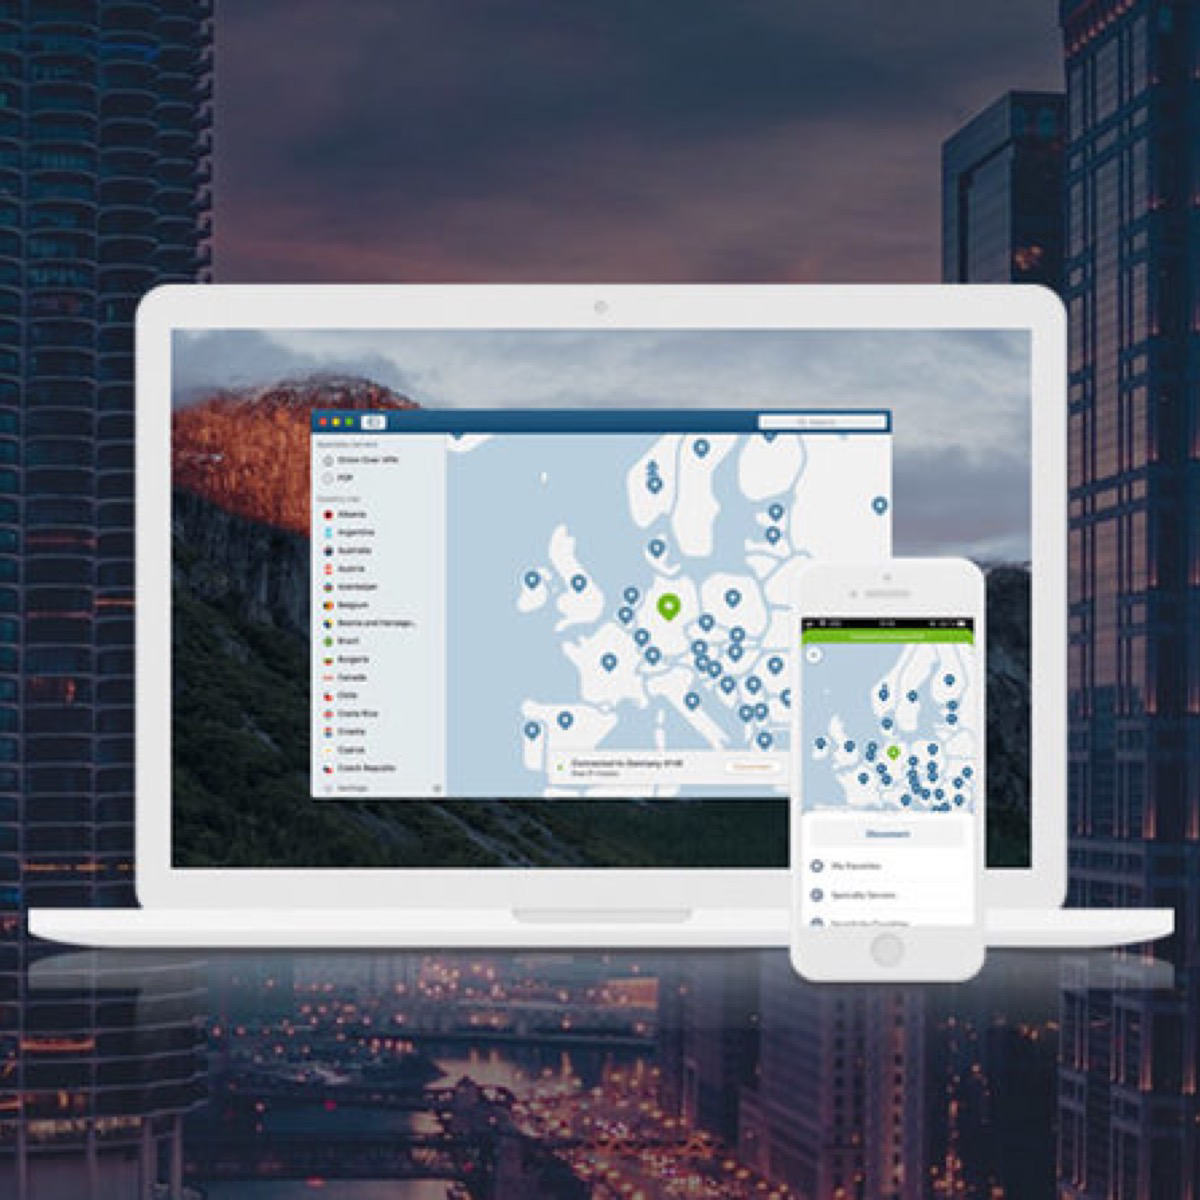 NordVPN, 71 off, 430 ↘️ 125 App, Urban survival kit, Kit